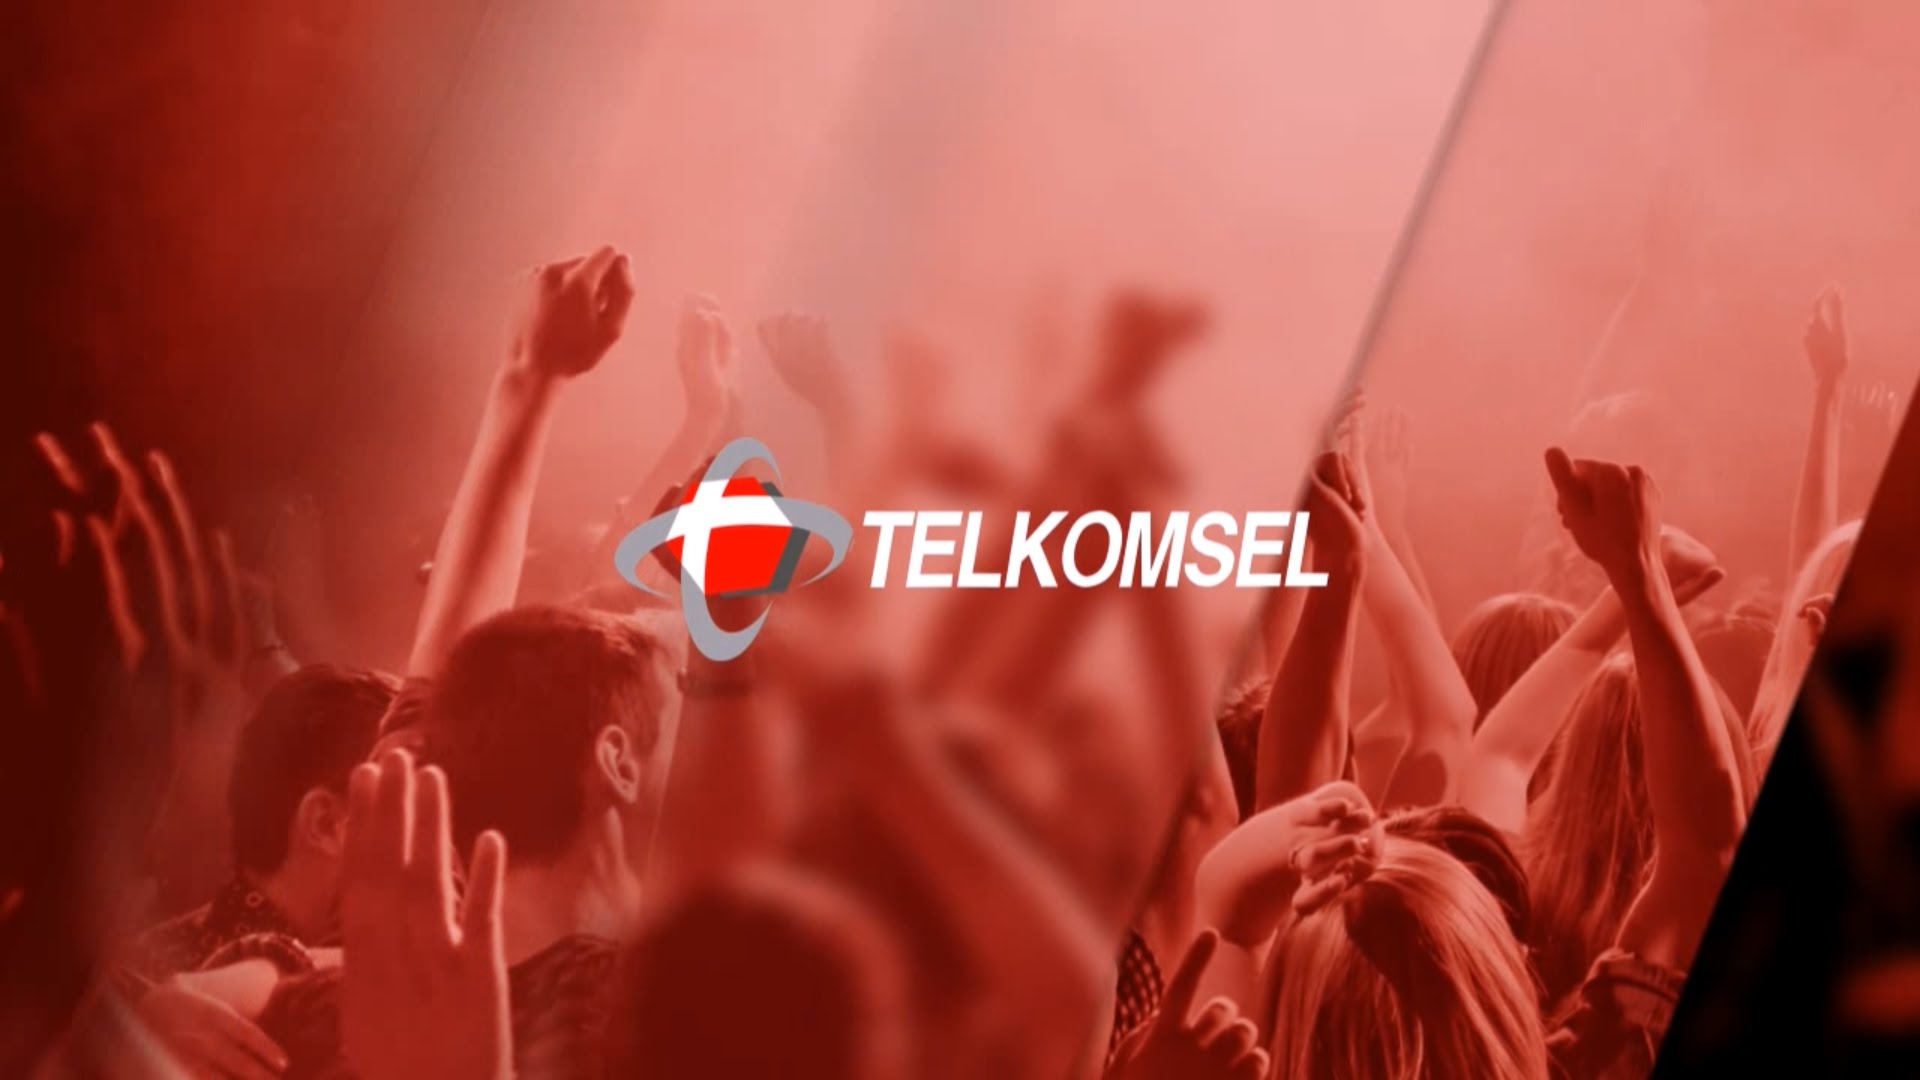 Hackers Takes Over Telkomsel's Site, Complains About High